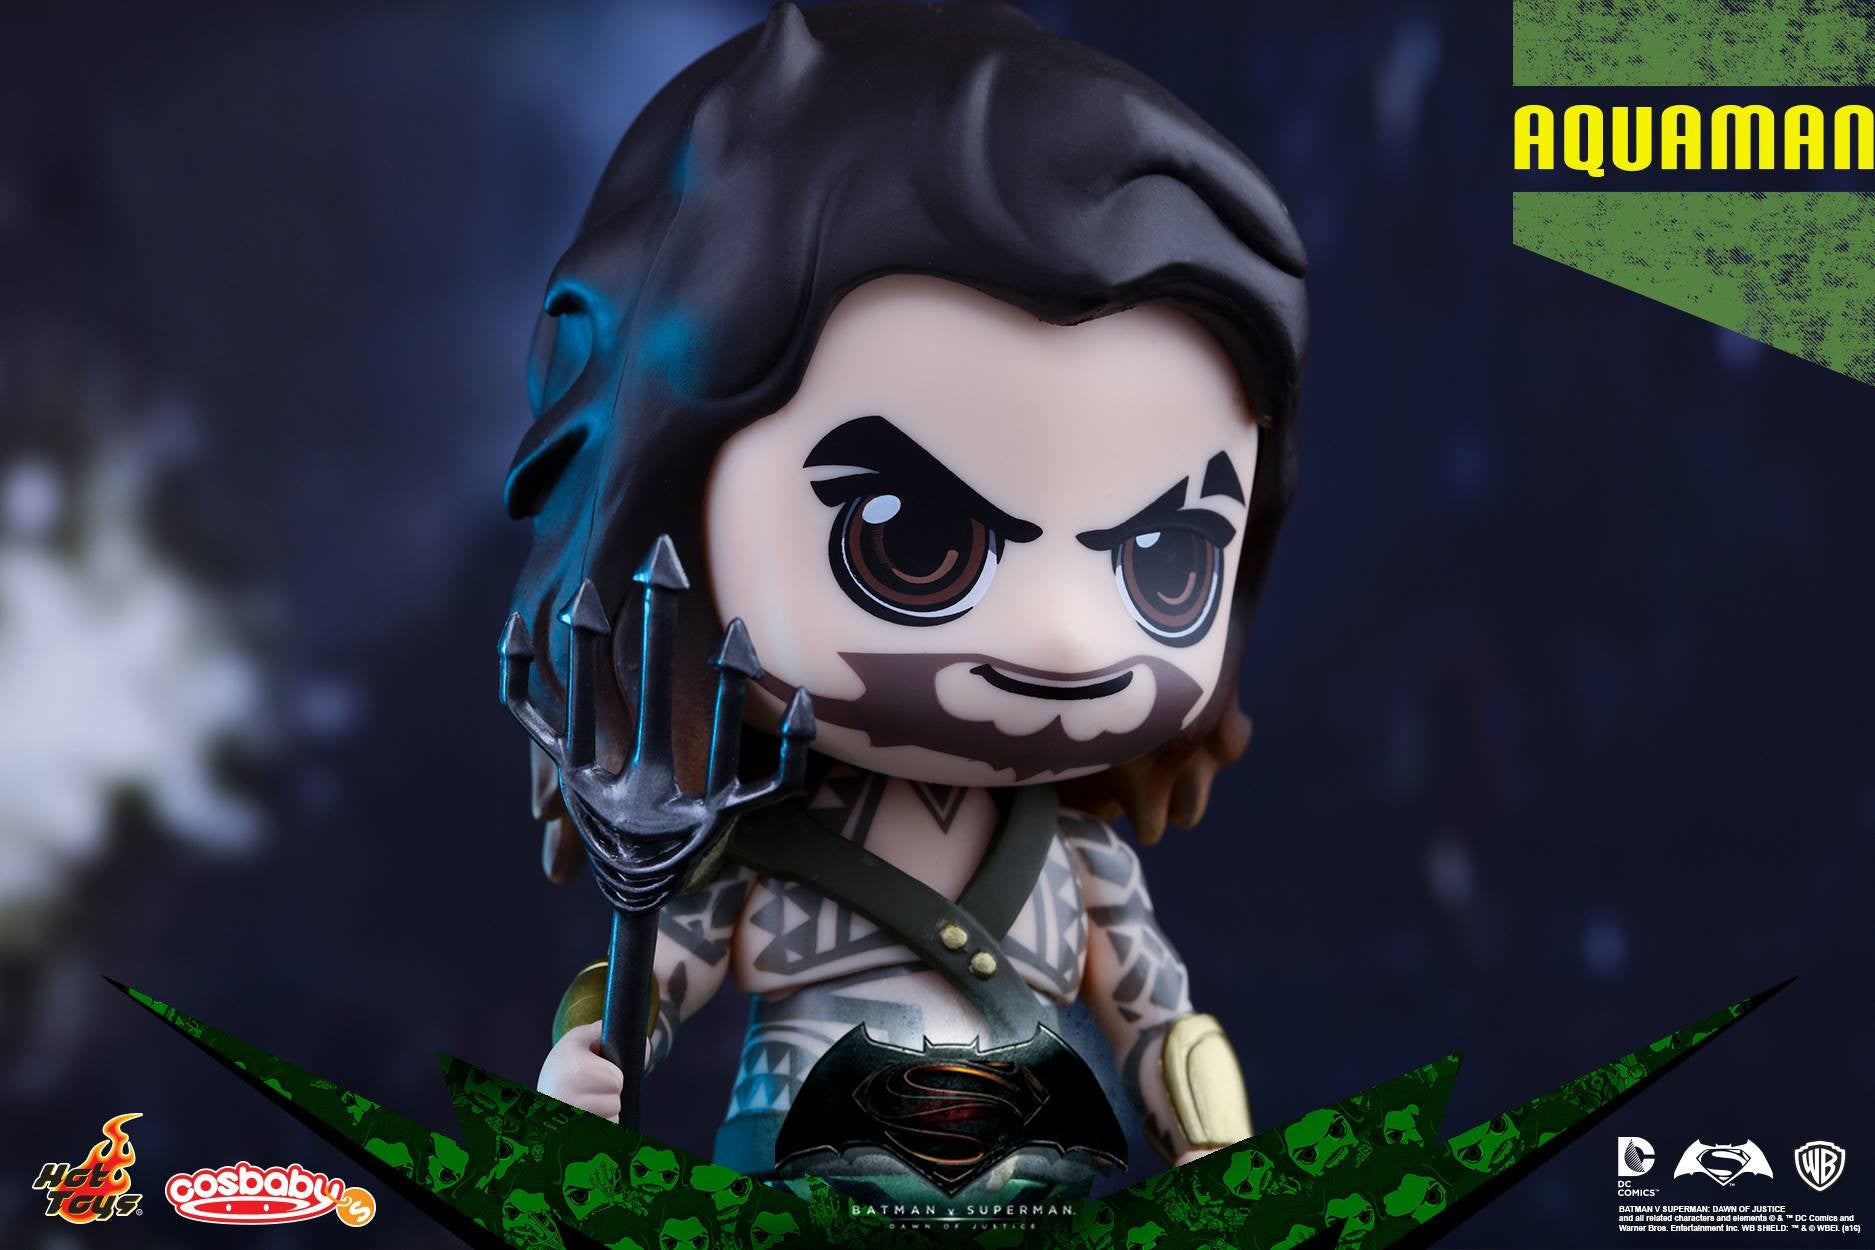 Aquaman Cosbaby Collectible COSB227 - Batman v Superman: Dawn Of Justice - Hot Toys - Marvelous Toys - 2